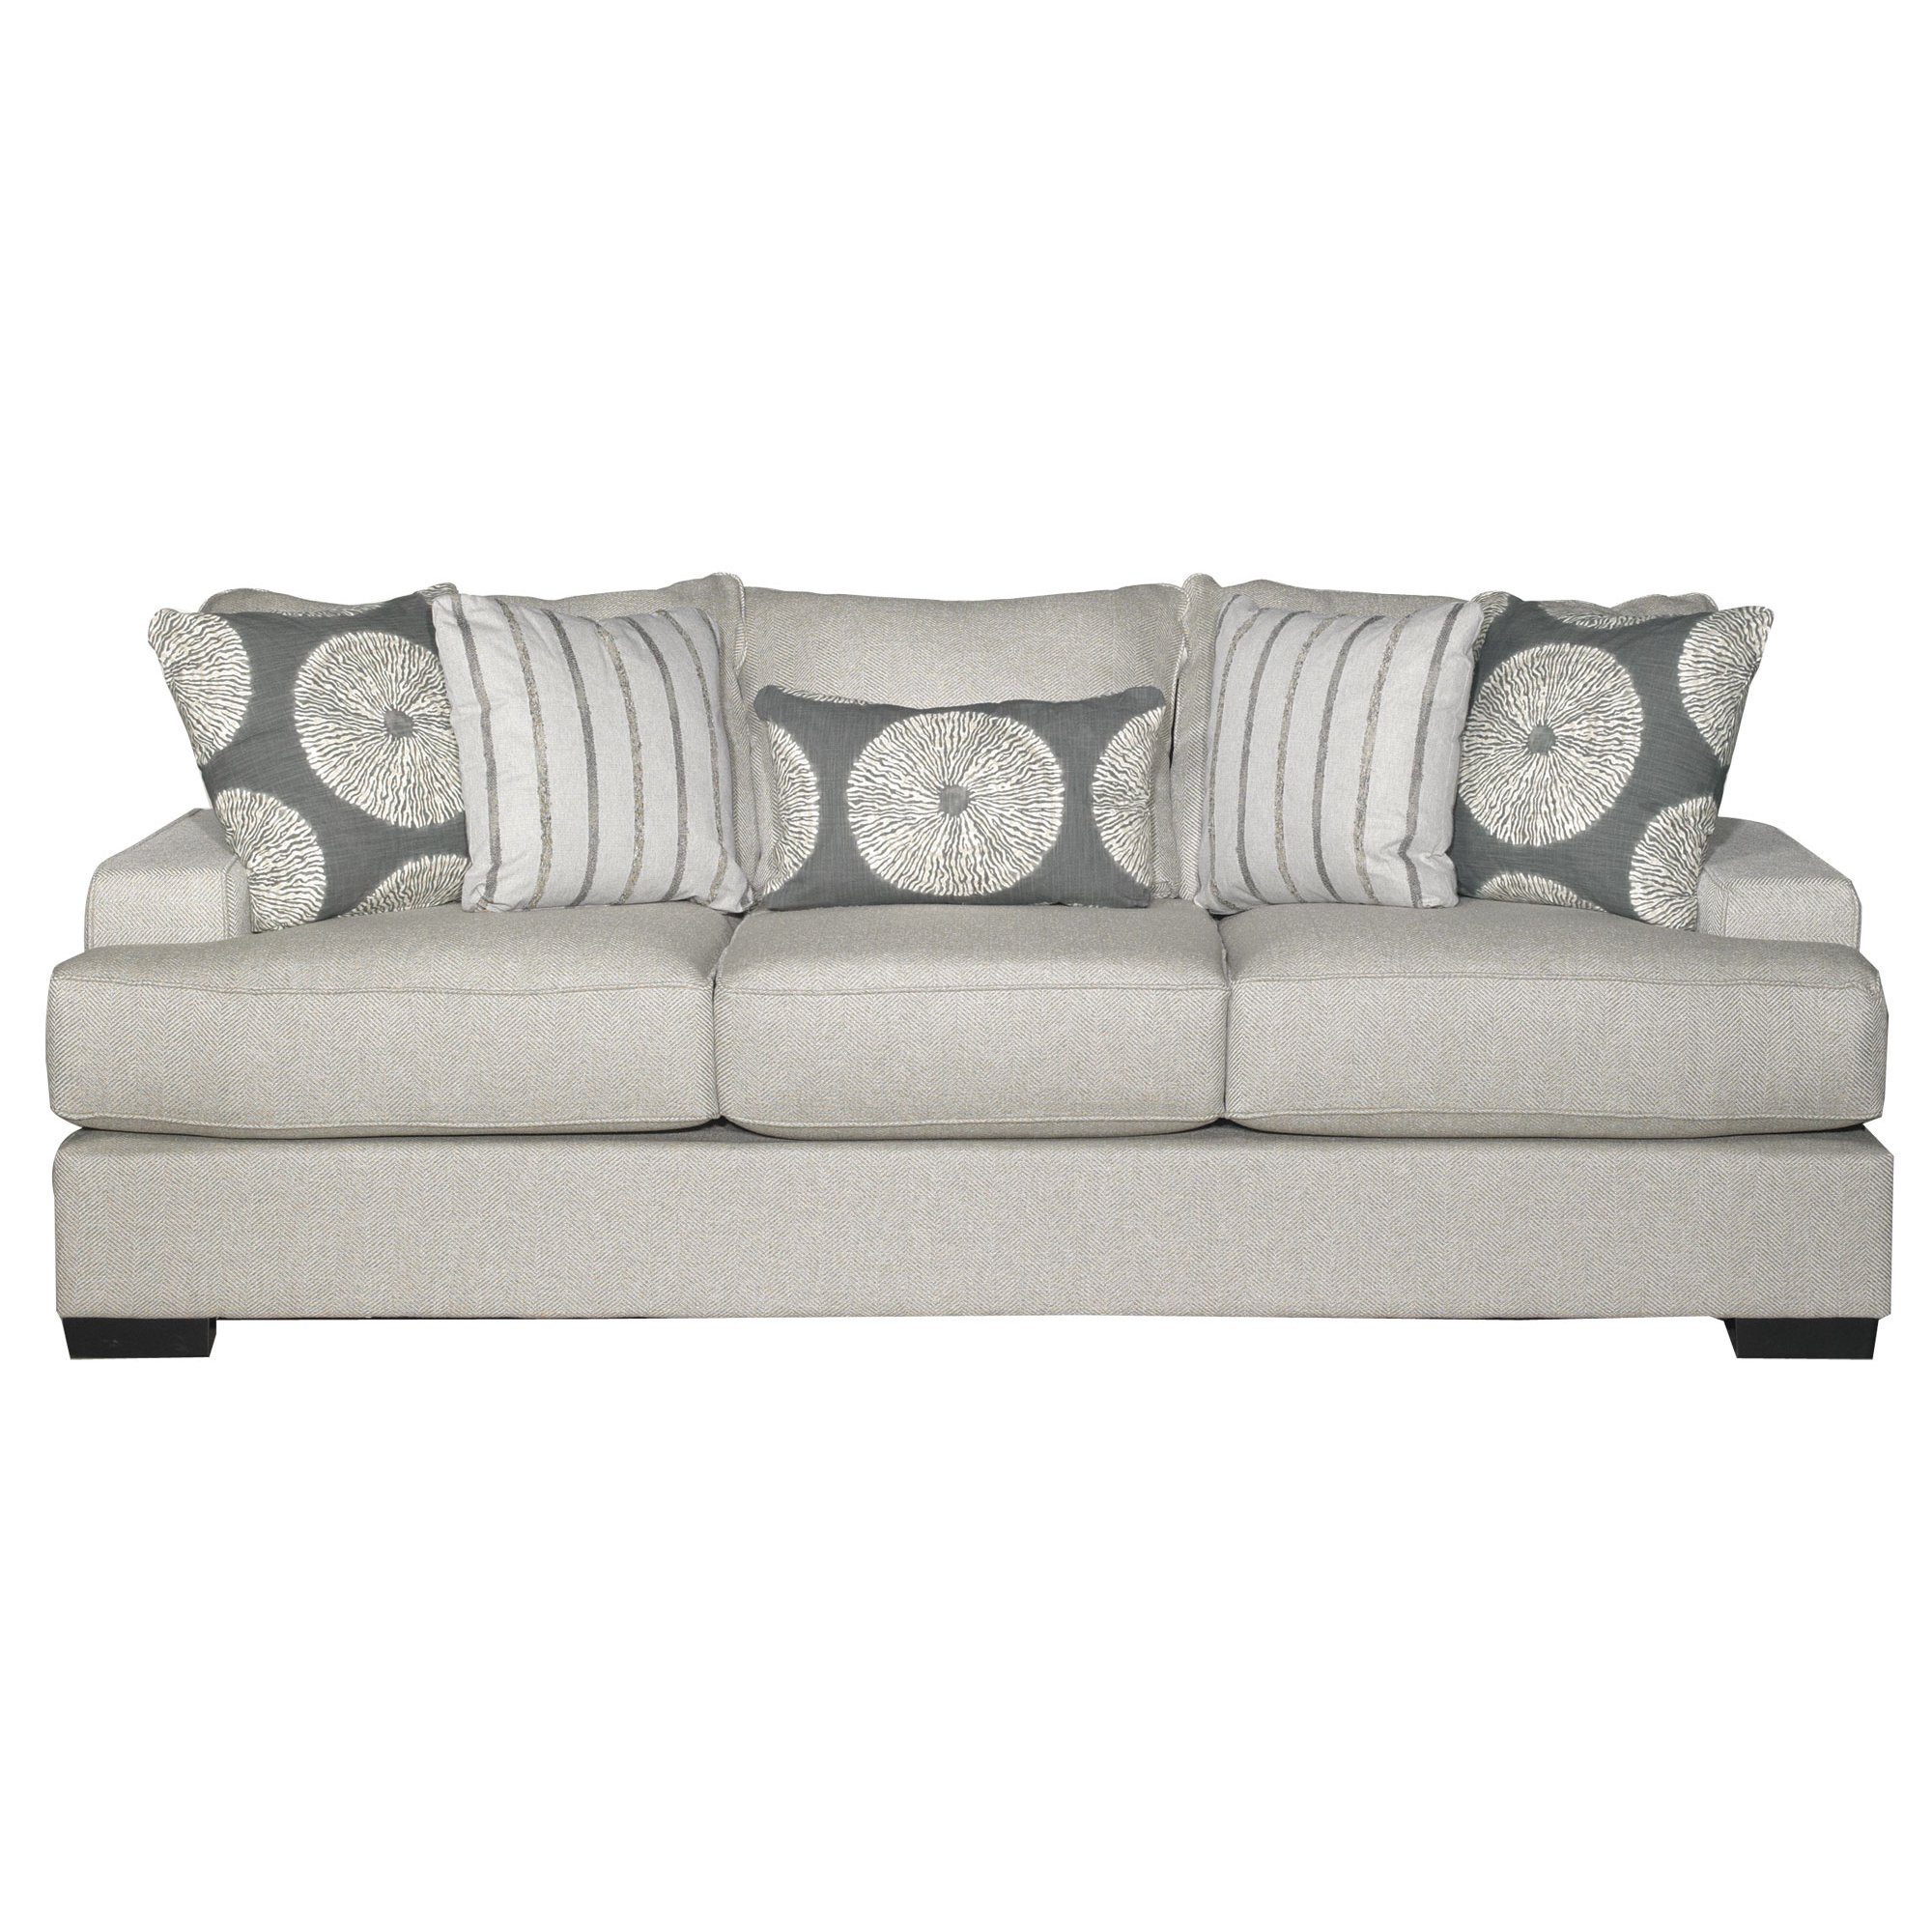 Shop Couches And Sofas For Sale RC Willey Furniture Store - Sofa center oakland